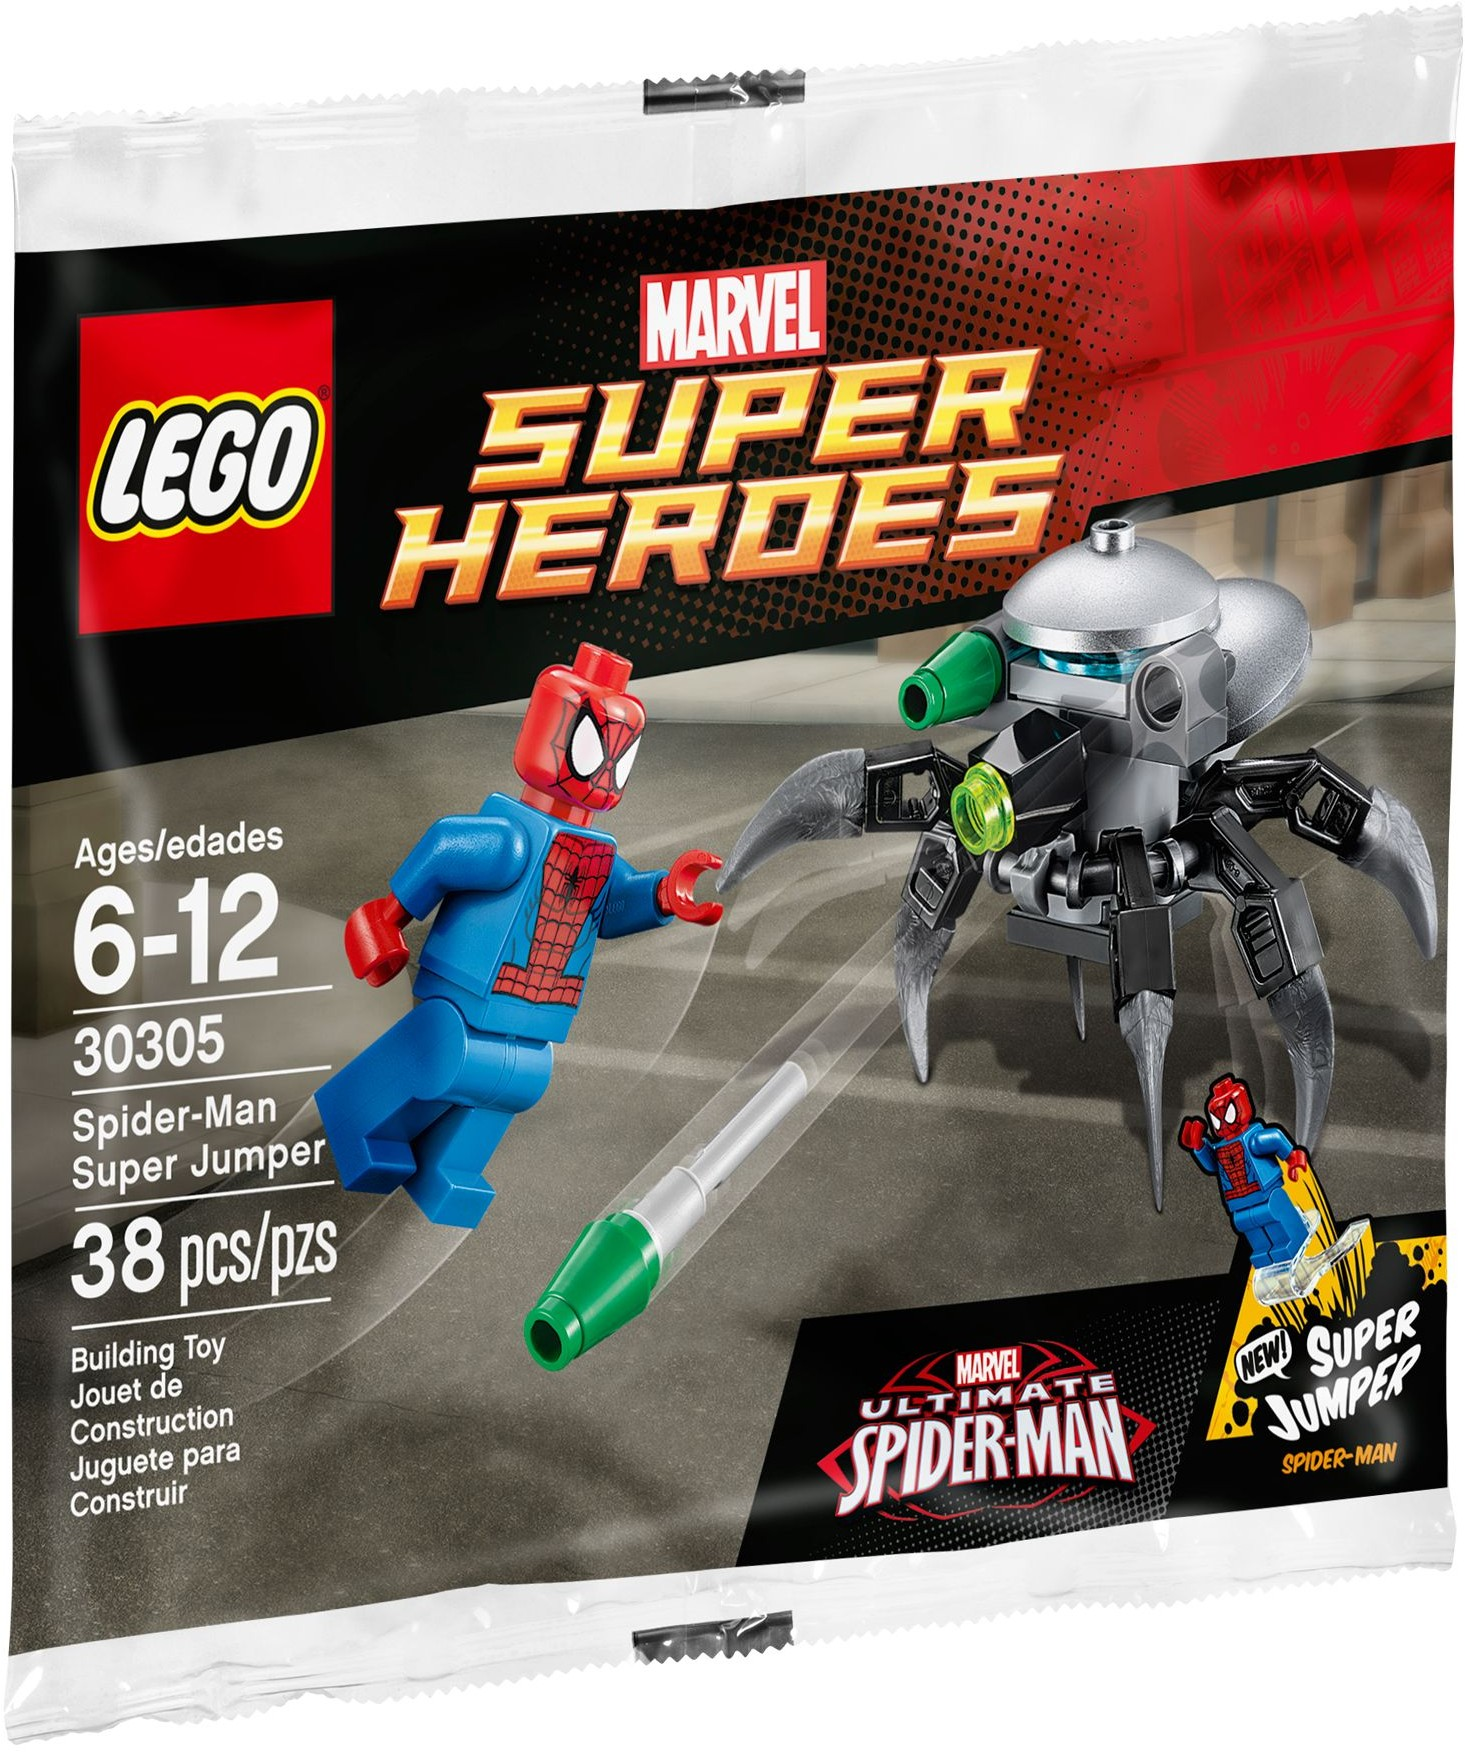 LEGO 30305 - Polybag - Spider-Man Super Jumper